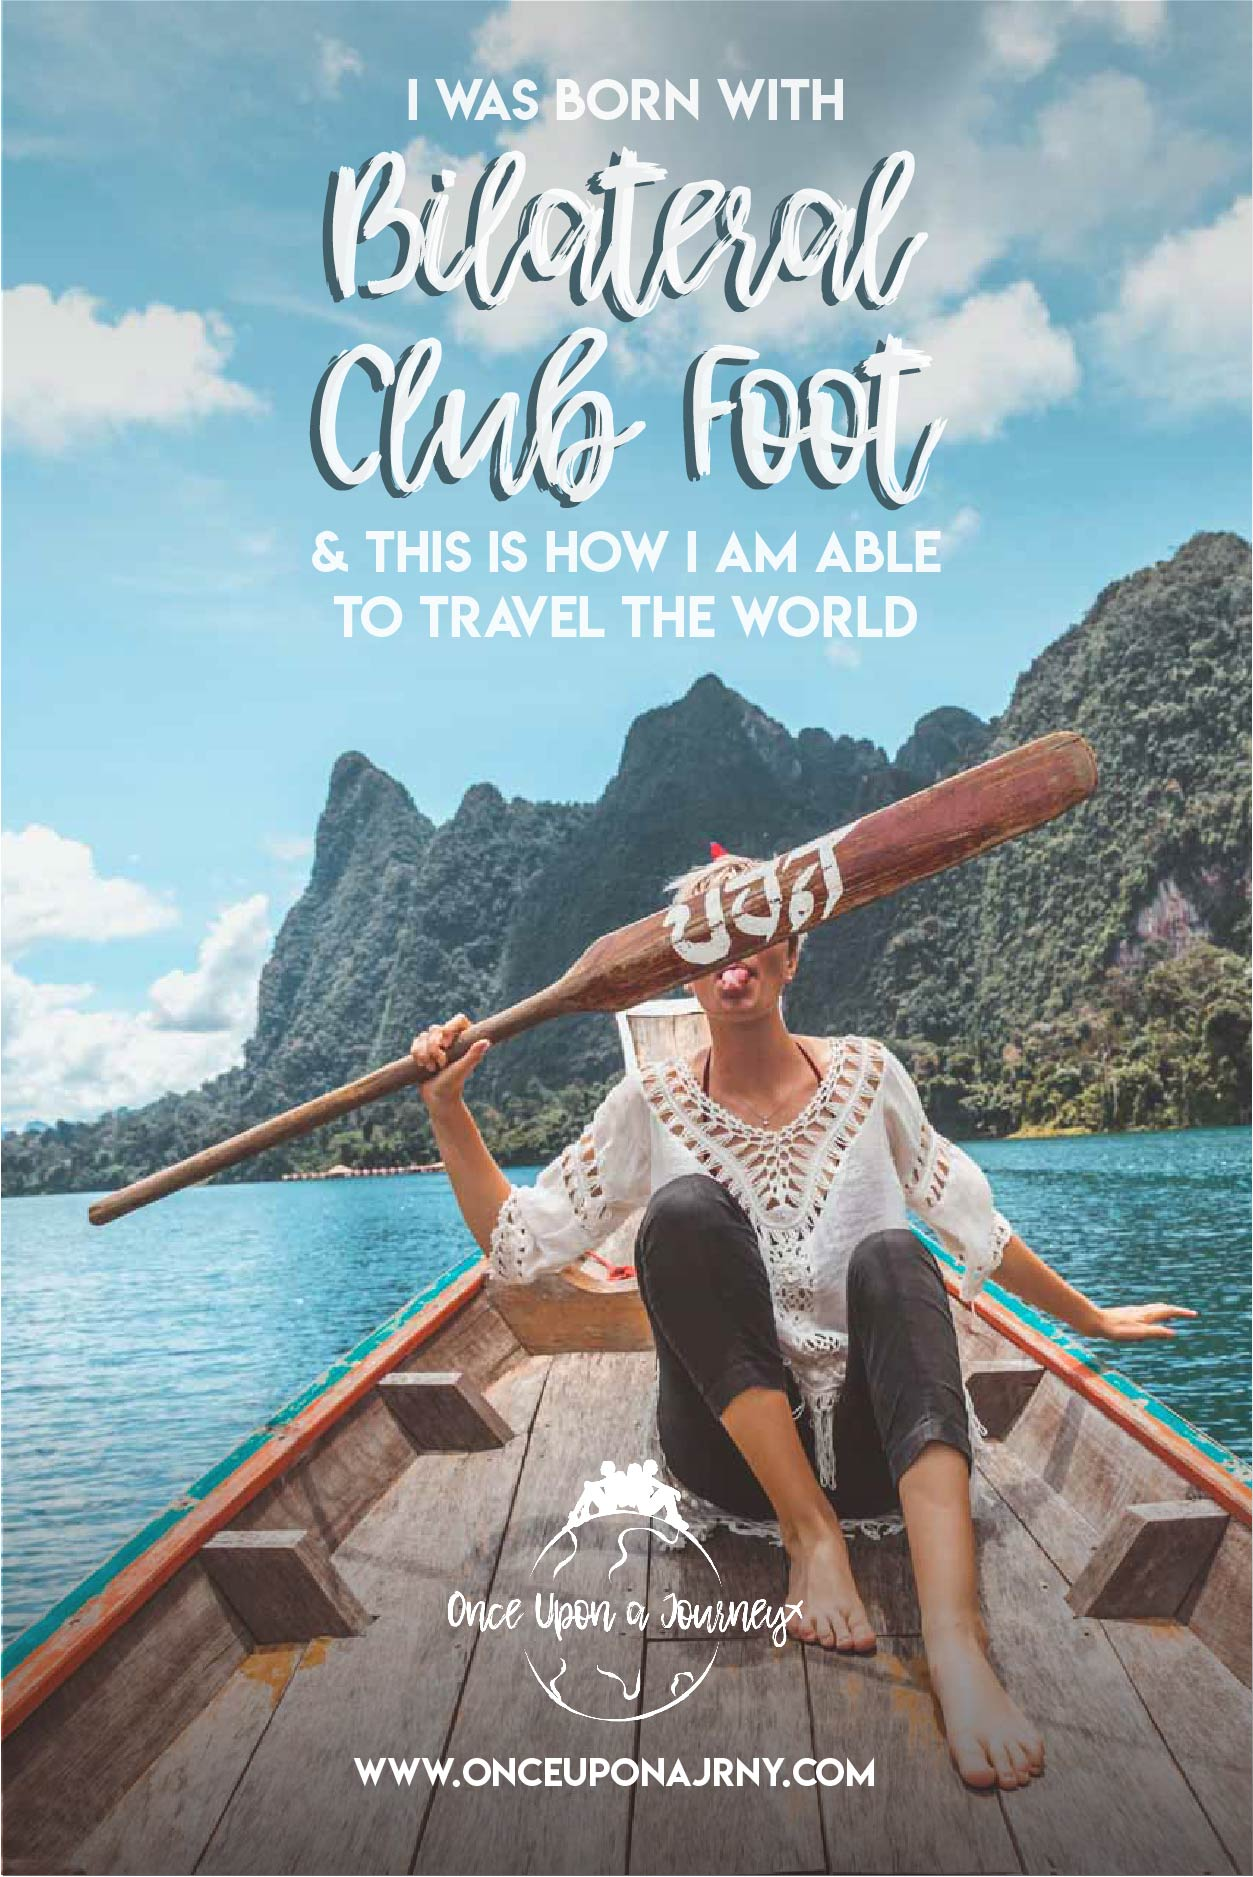 I was born with bilateral club foot and THIS is how I am able to travel the world | Once Upon A Journey LGBT Travel Blog #clubfoot #bilateralclubfoot #ctev #travel #travelwithdisability #hallux #fitsyourfeet